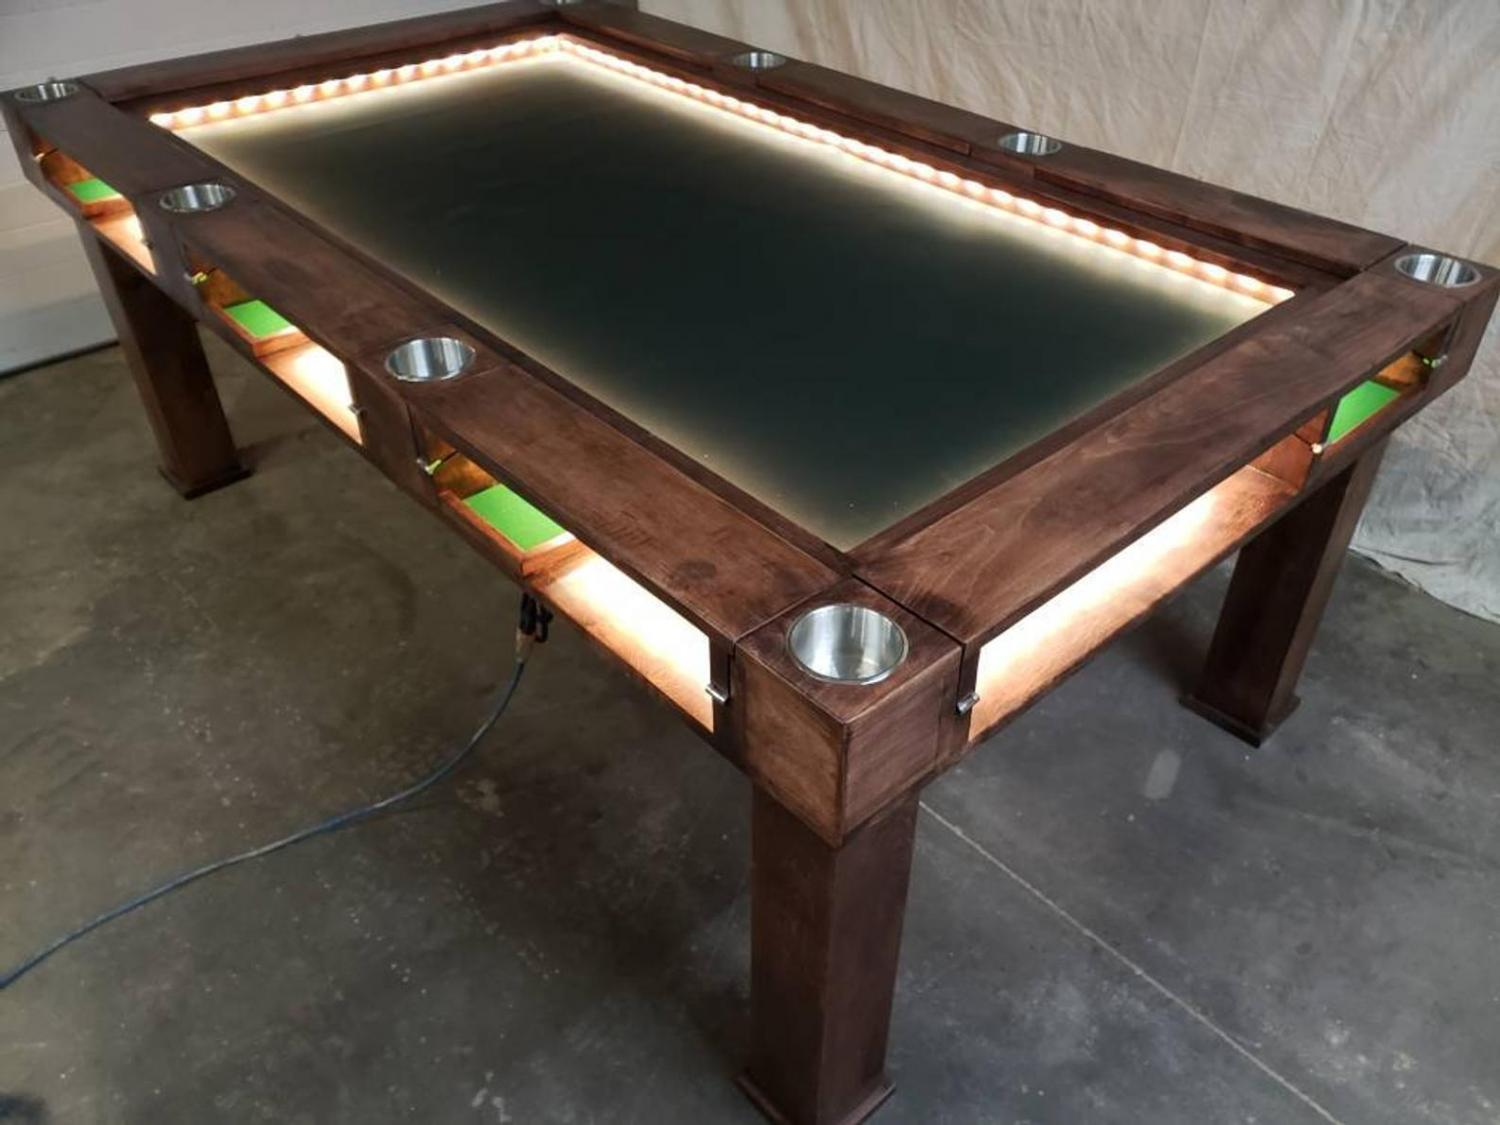 The Ultimate Board Game Table